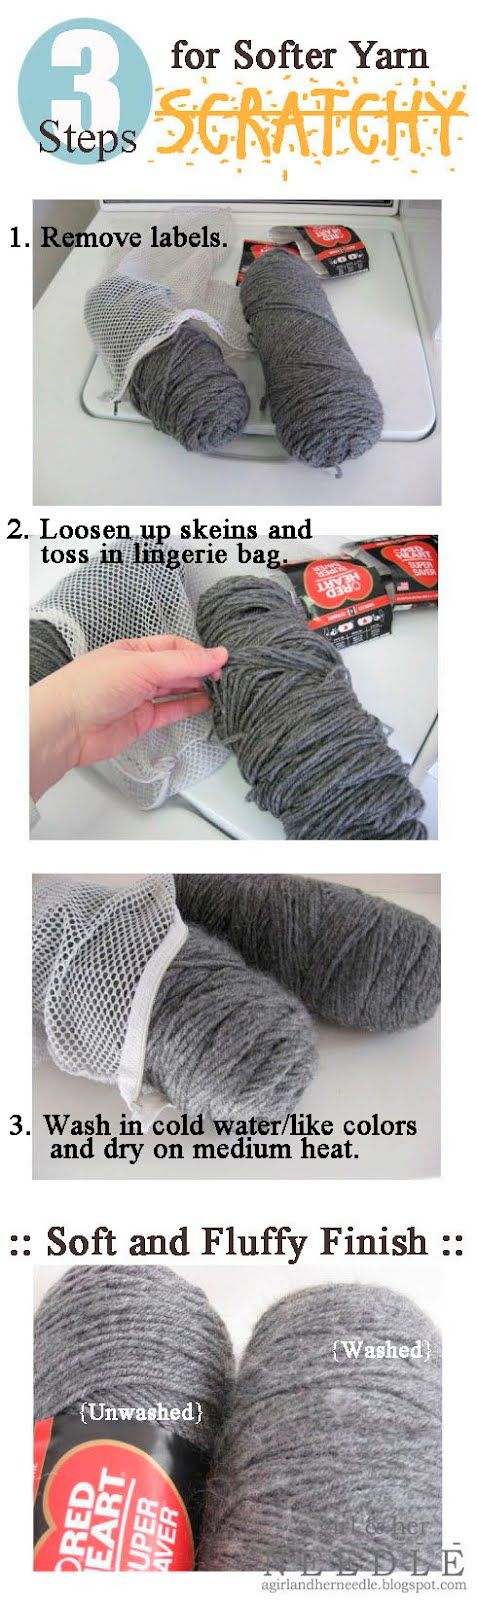 How to soften cheap acrylic yarns